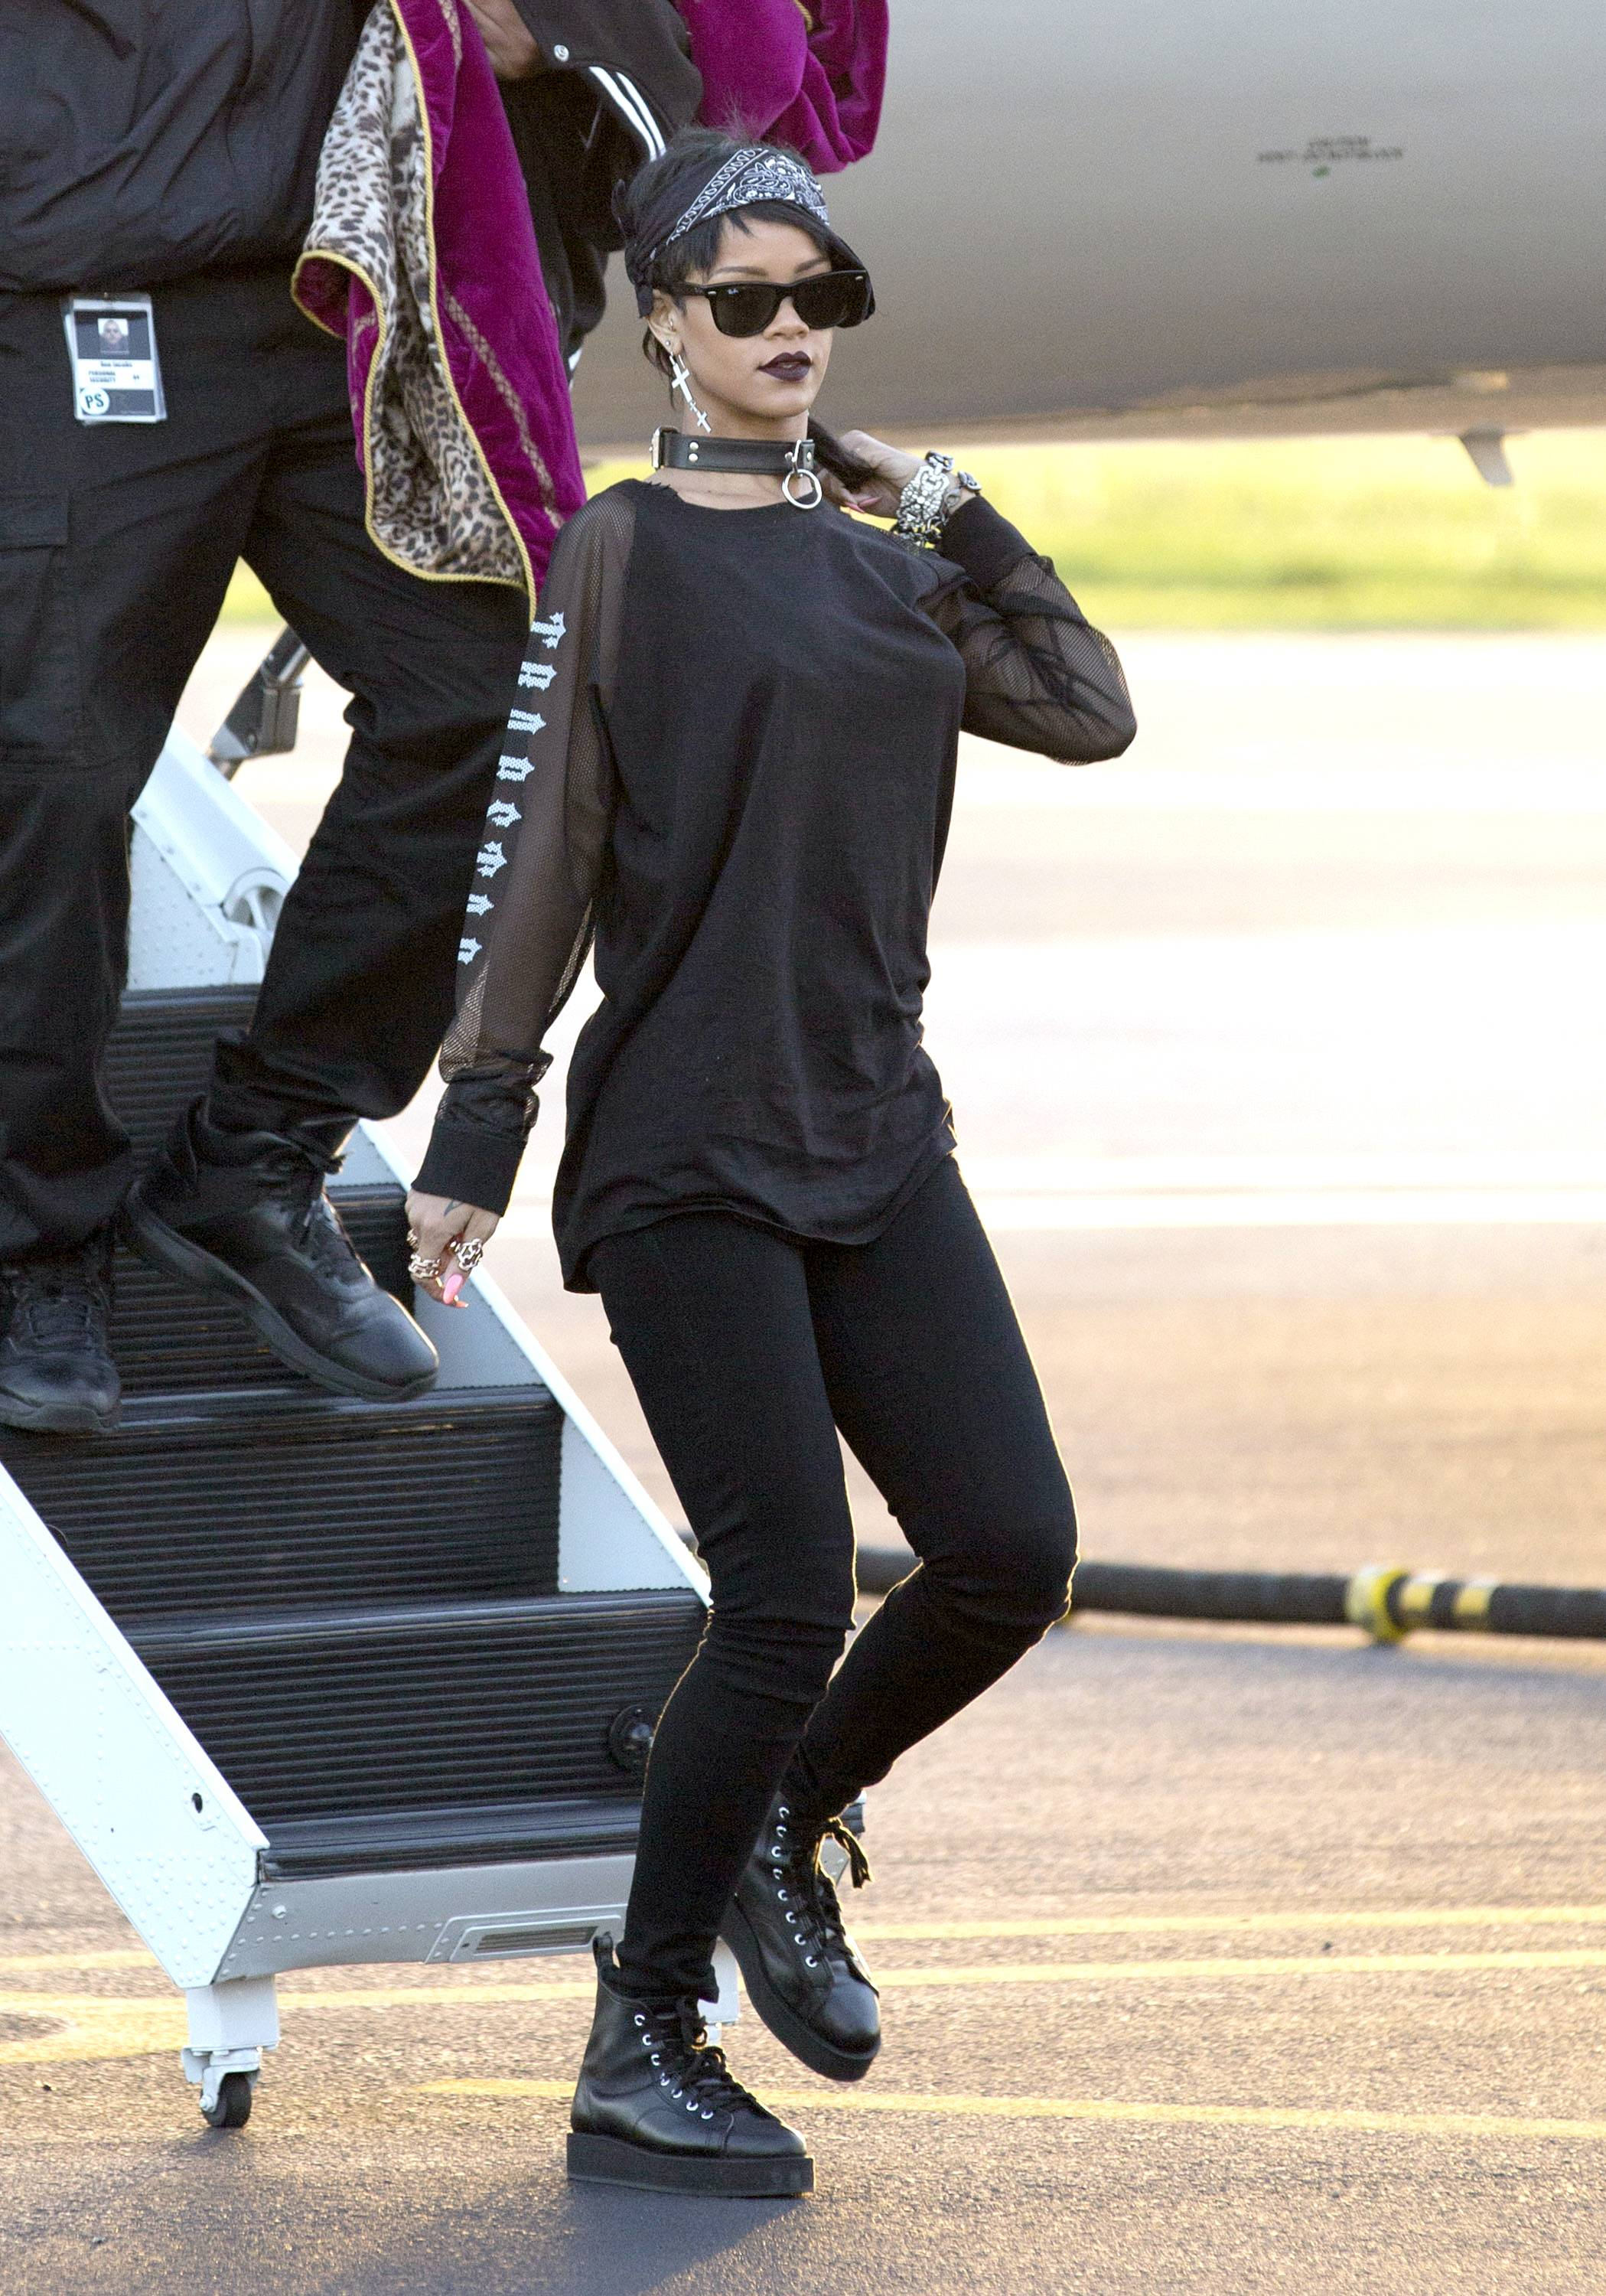 """Rih-Rih Goes Dark - """"Ghetto goth,"""" a modern mash-up of '80s and '90s urban wear (hoodies, snapbacks and Jordans), '90s grunge (layering and rugged details) and gothic styles (statement accessories, head-to-toe black and subtle shine) is gaining steam in fashion circles, with Rihanna leading the push. Keep reading to see how Rih-Rih rocks this rebellious look. By Britt Middleton  We first noticed the singer?s transition in late August, when she debuted a rocker-inspired mullet. We admit we?re still getting used to her new look, but we give her props for keeping us on our toes, as she did recently in a black and mesh top, bandana and leather dog collar choker.  (Photo: FameFlynet, Inc)"""